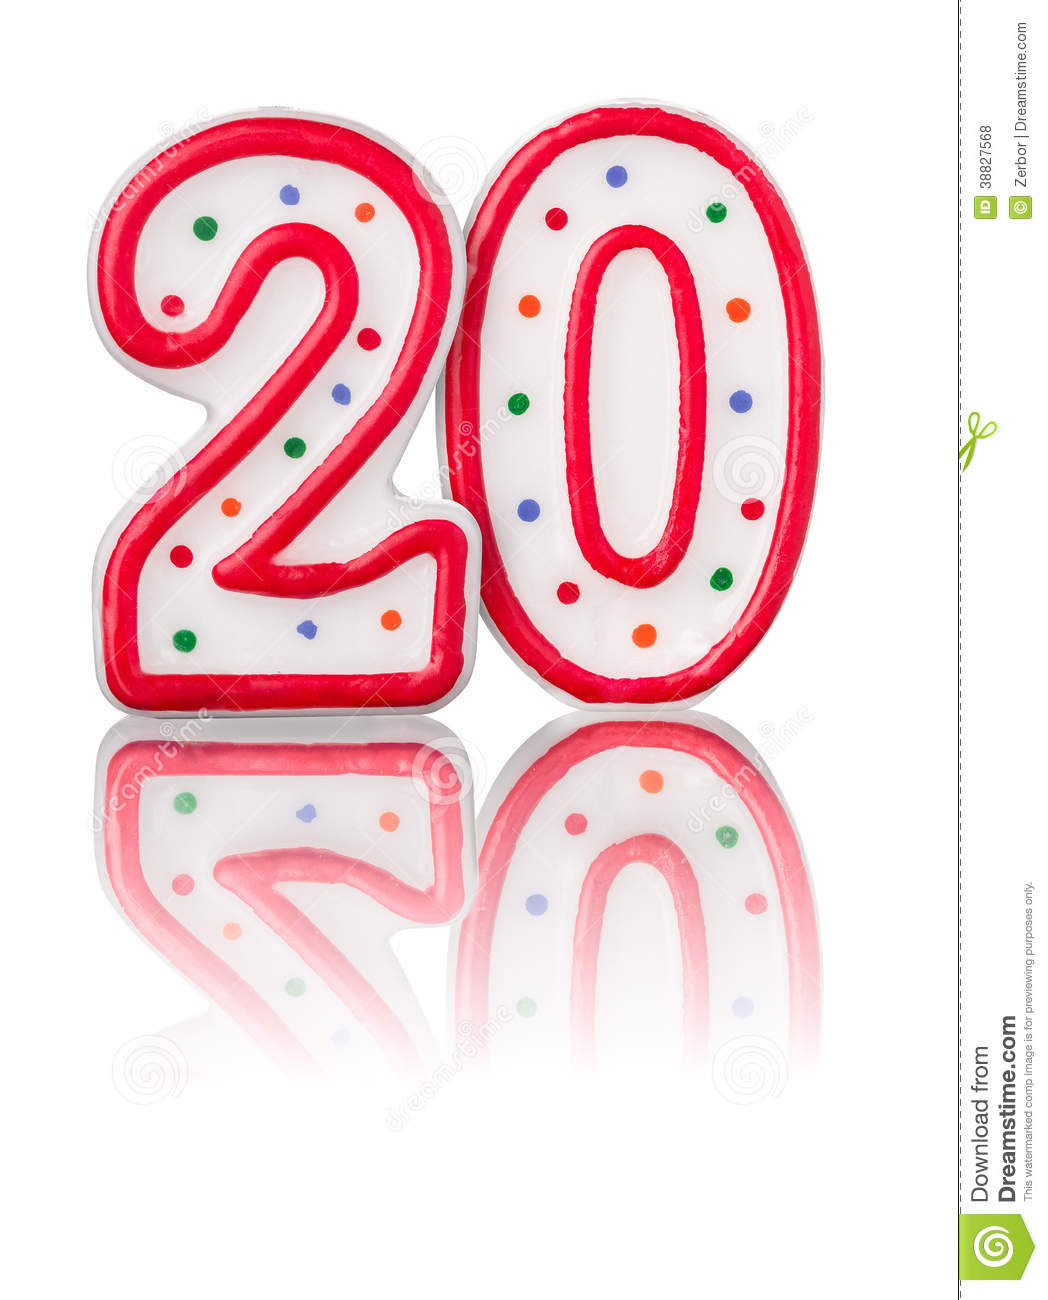 red number 20 stock illustration image 38827568 birthday candle clip art images birthday candle clip art outline